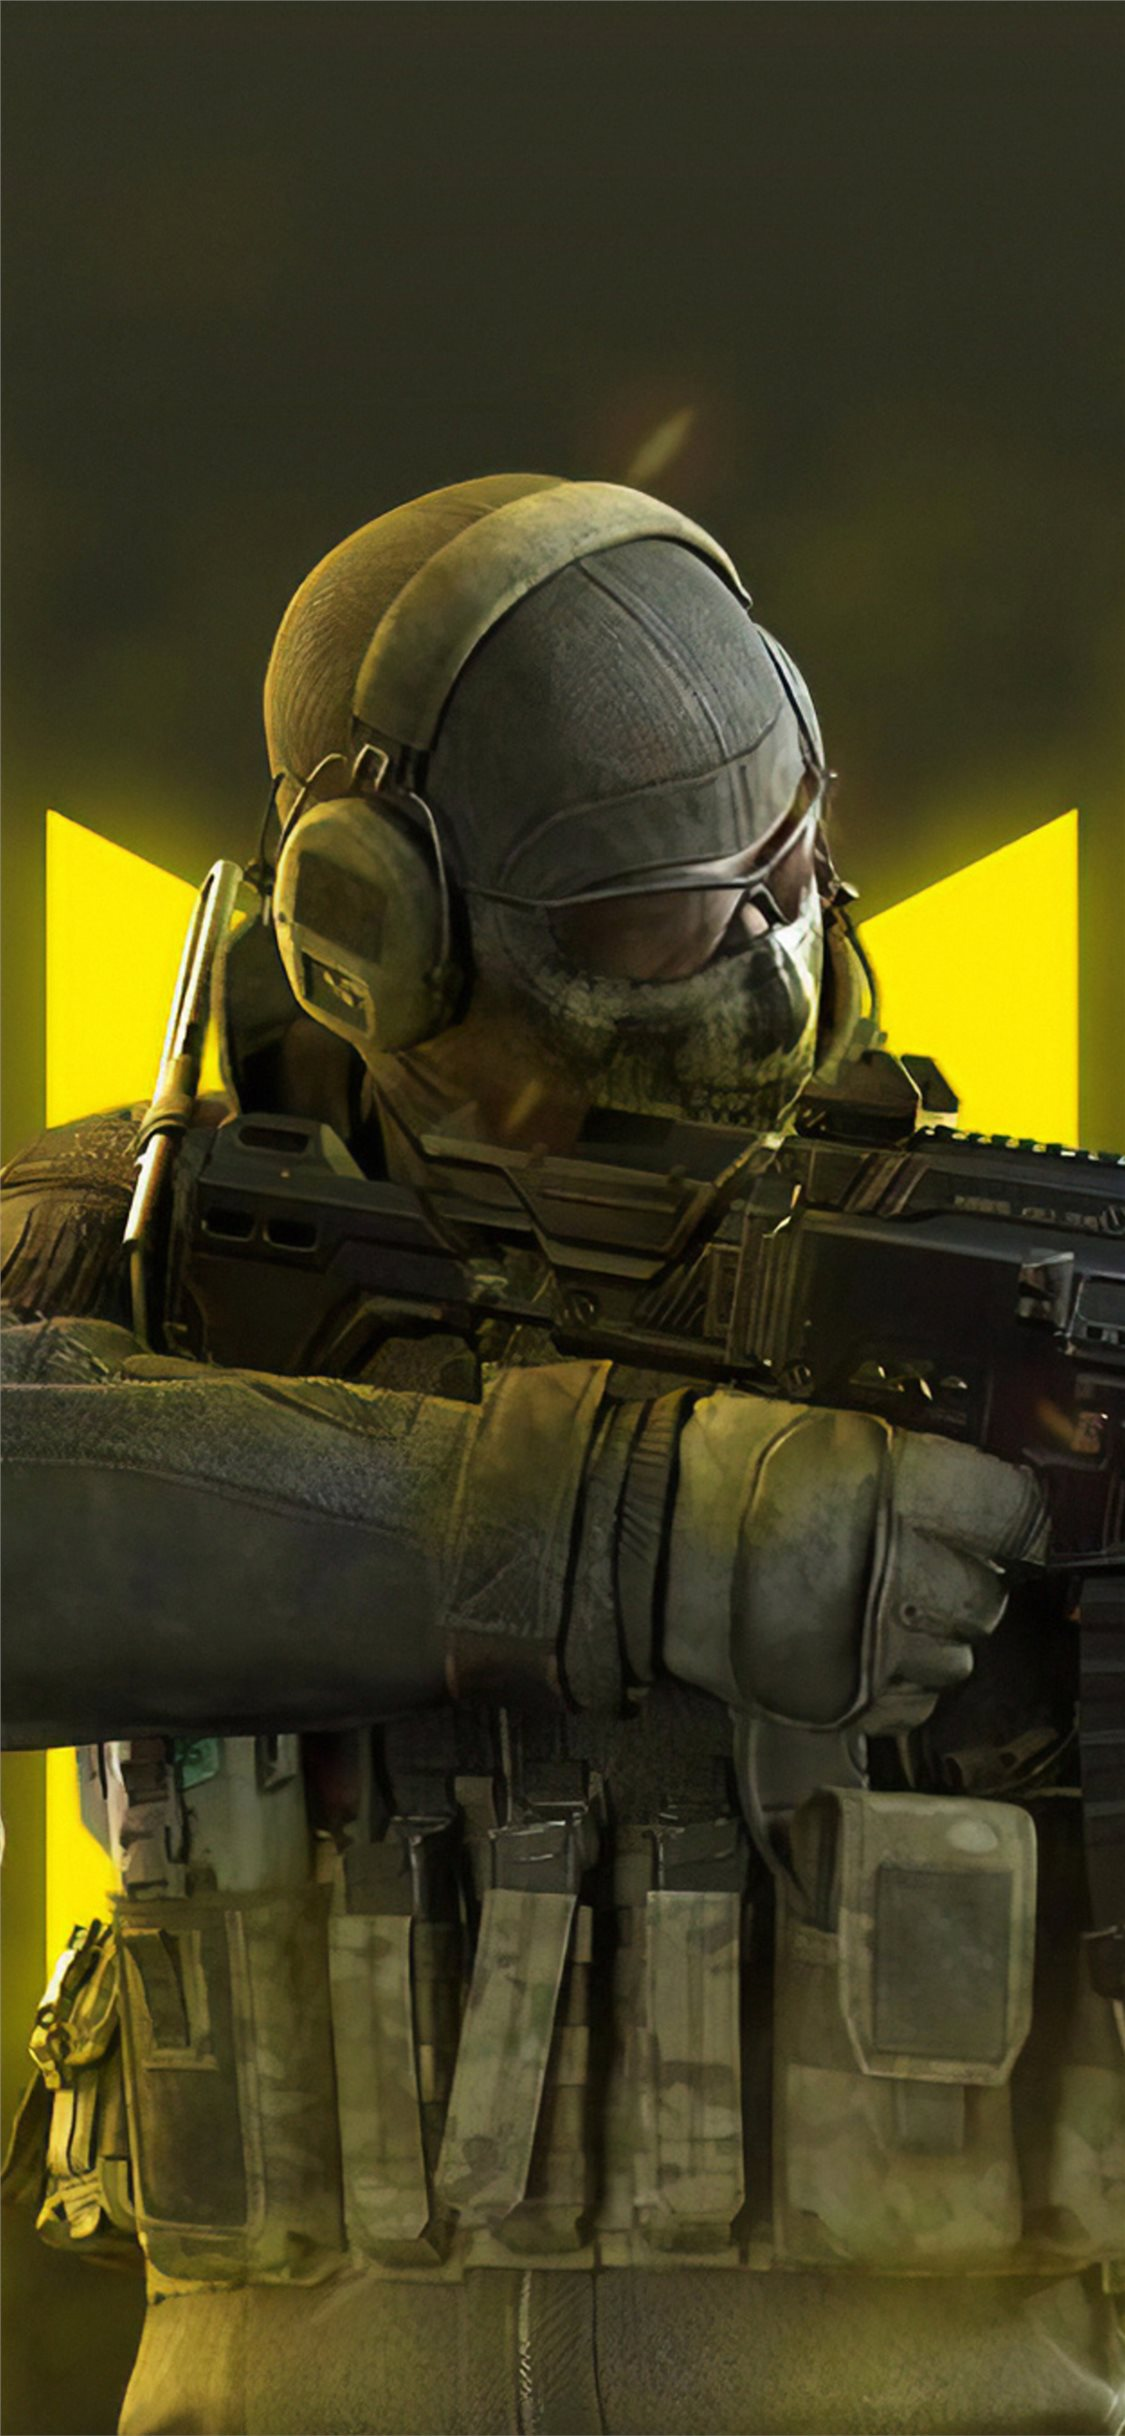 Call Of Duty Mobile 4k 2019 Iphone X Wallpapers Free Download